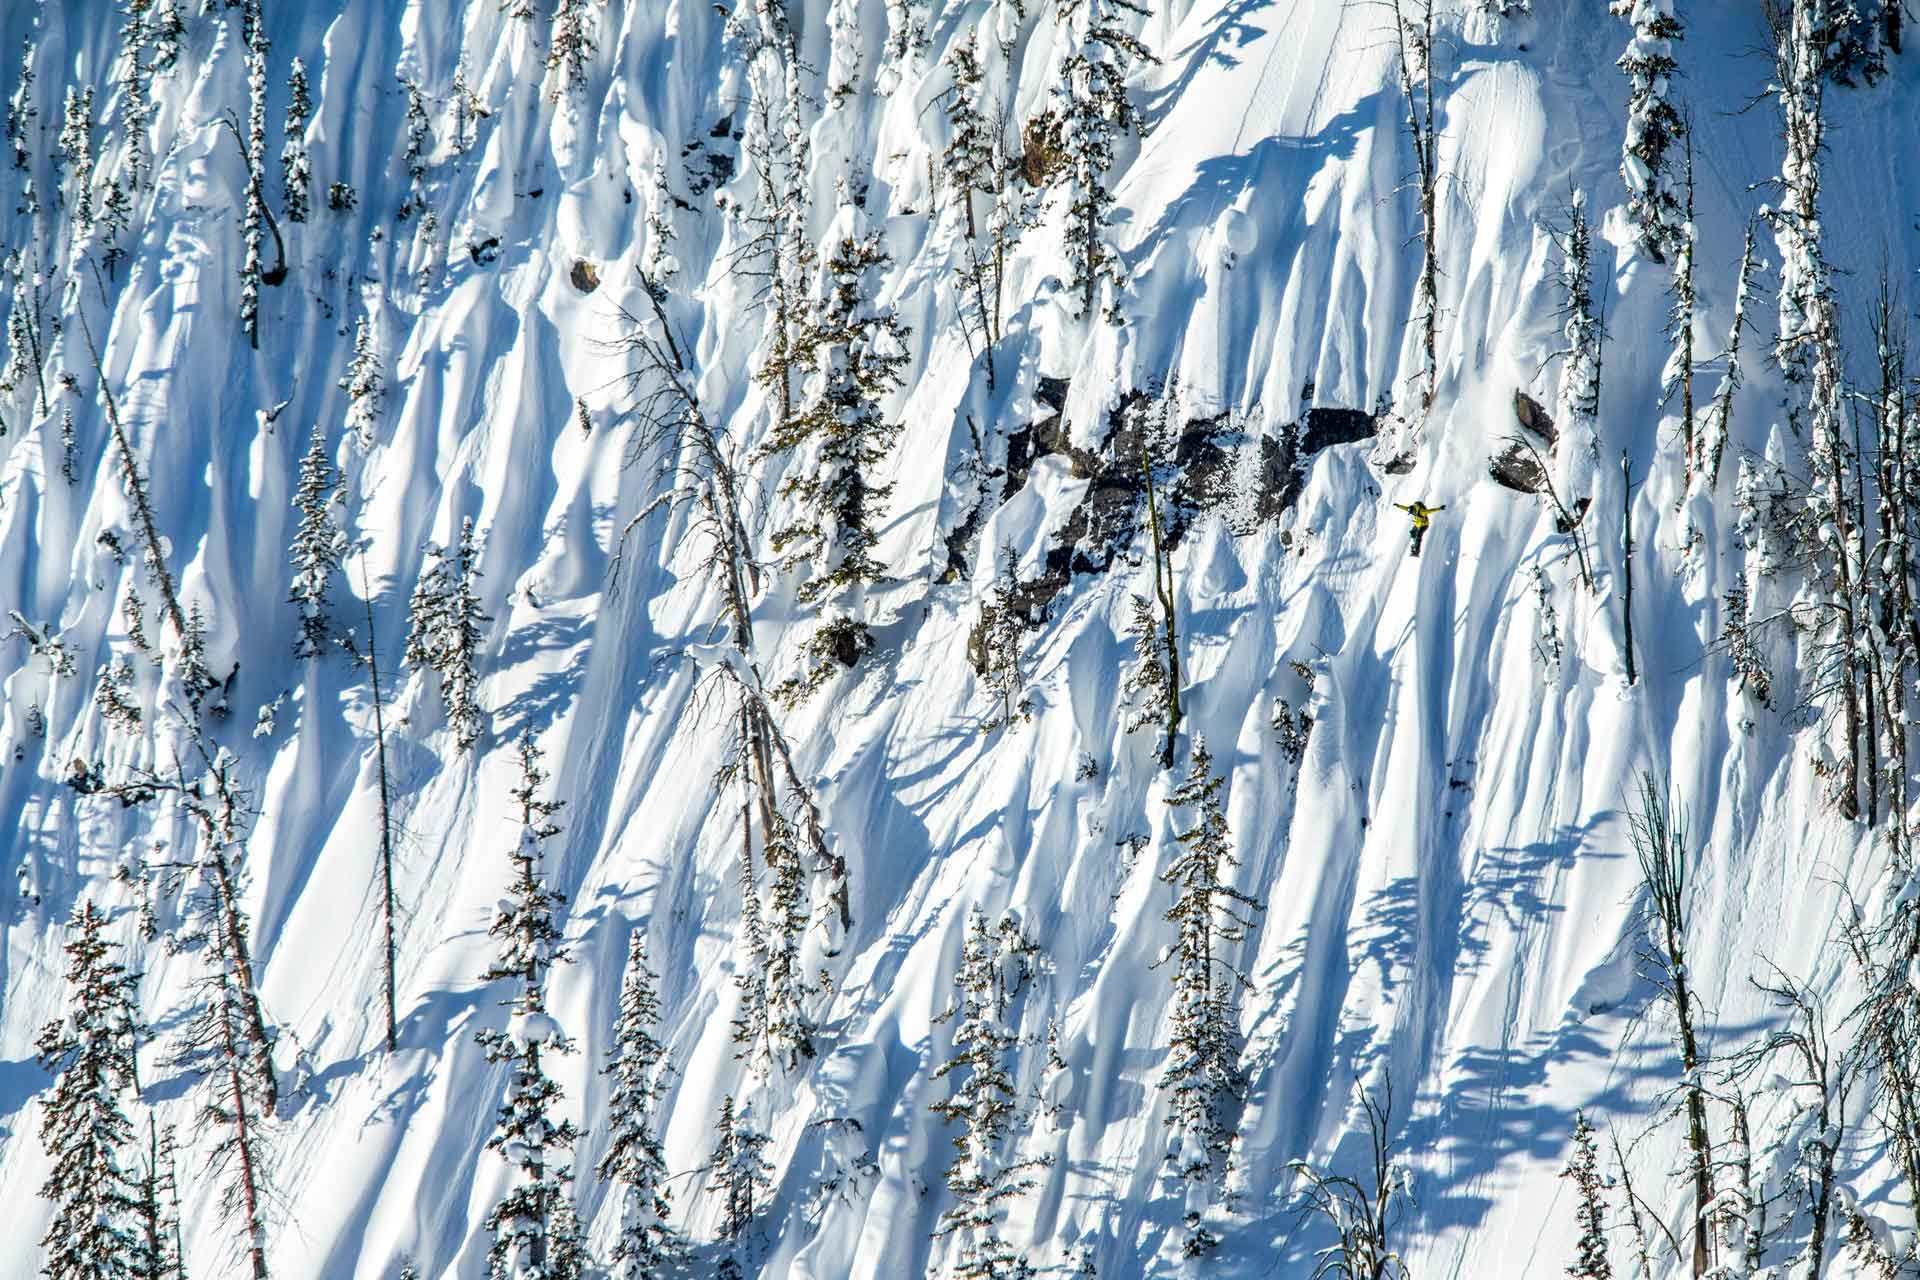 Snowboarder in the backcountry.